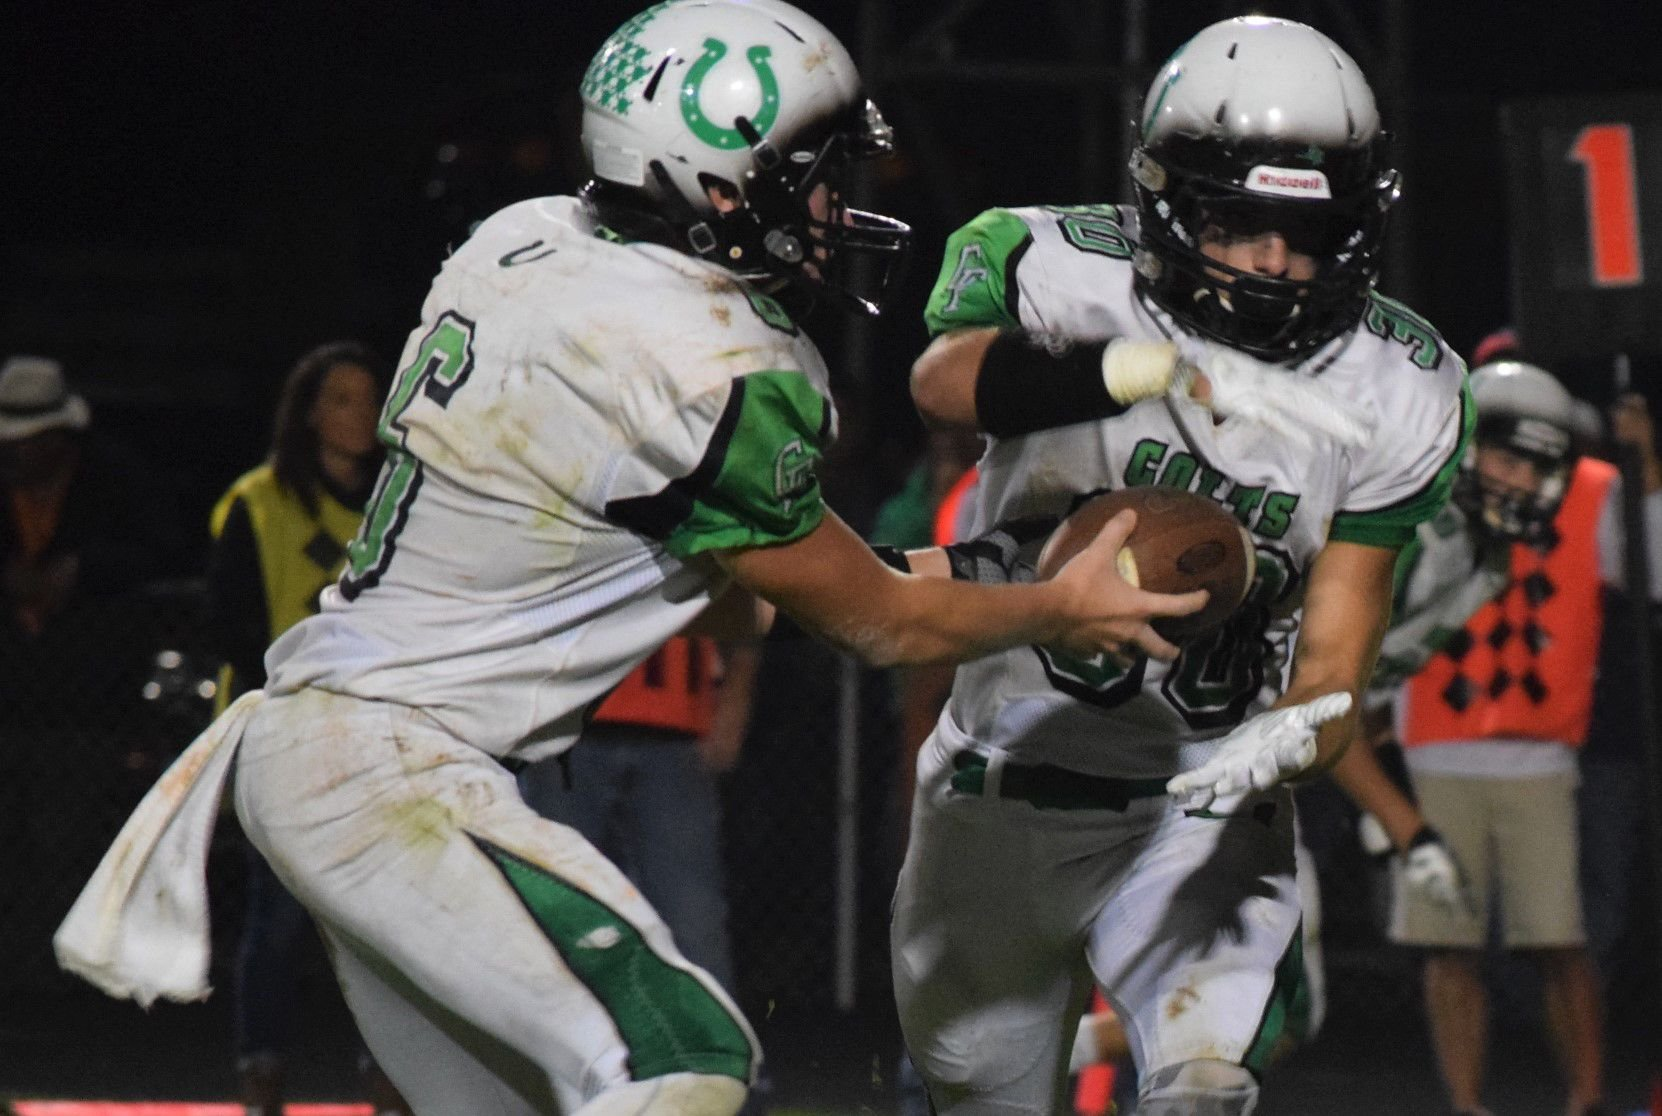 High school football: Clear Fork at Galion